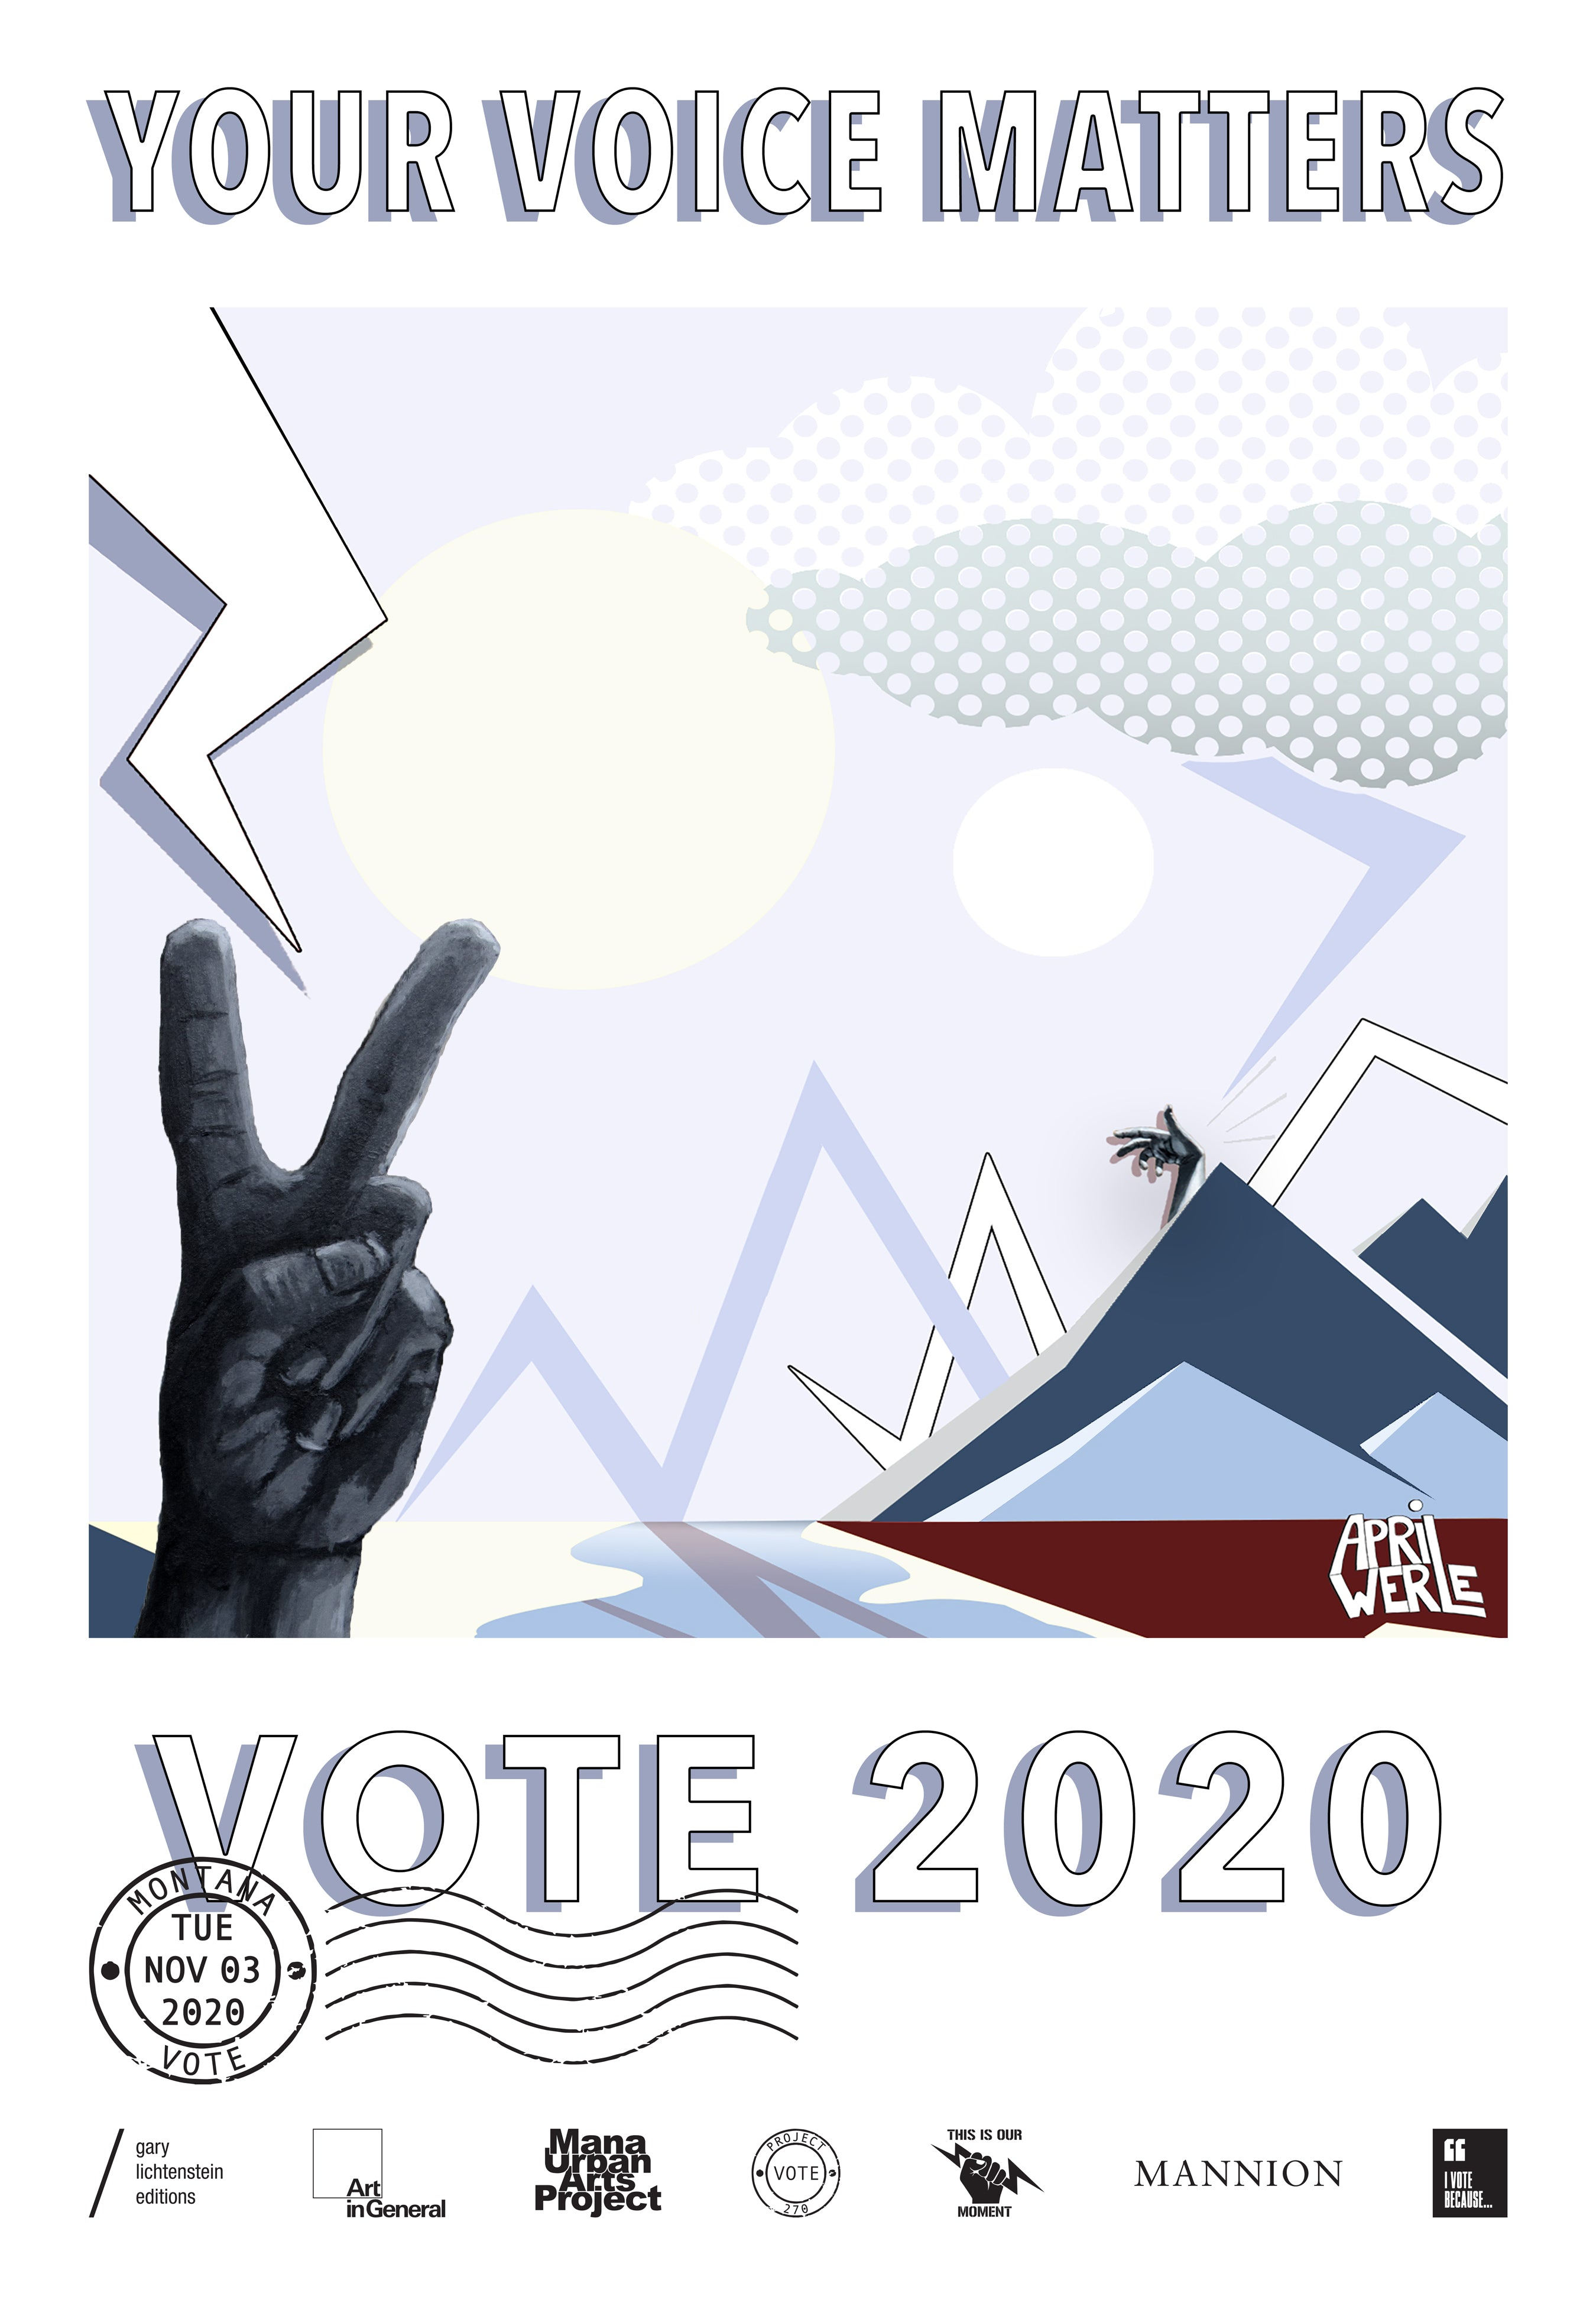 Montana Get Out The Vote Poster by April Werle